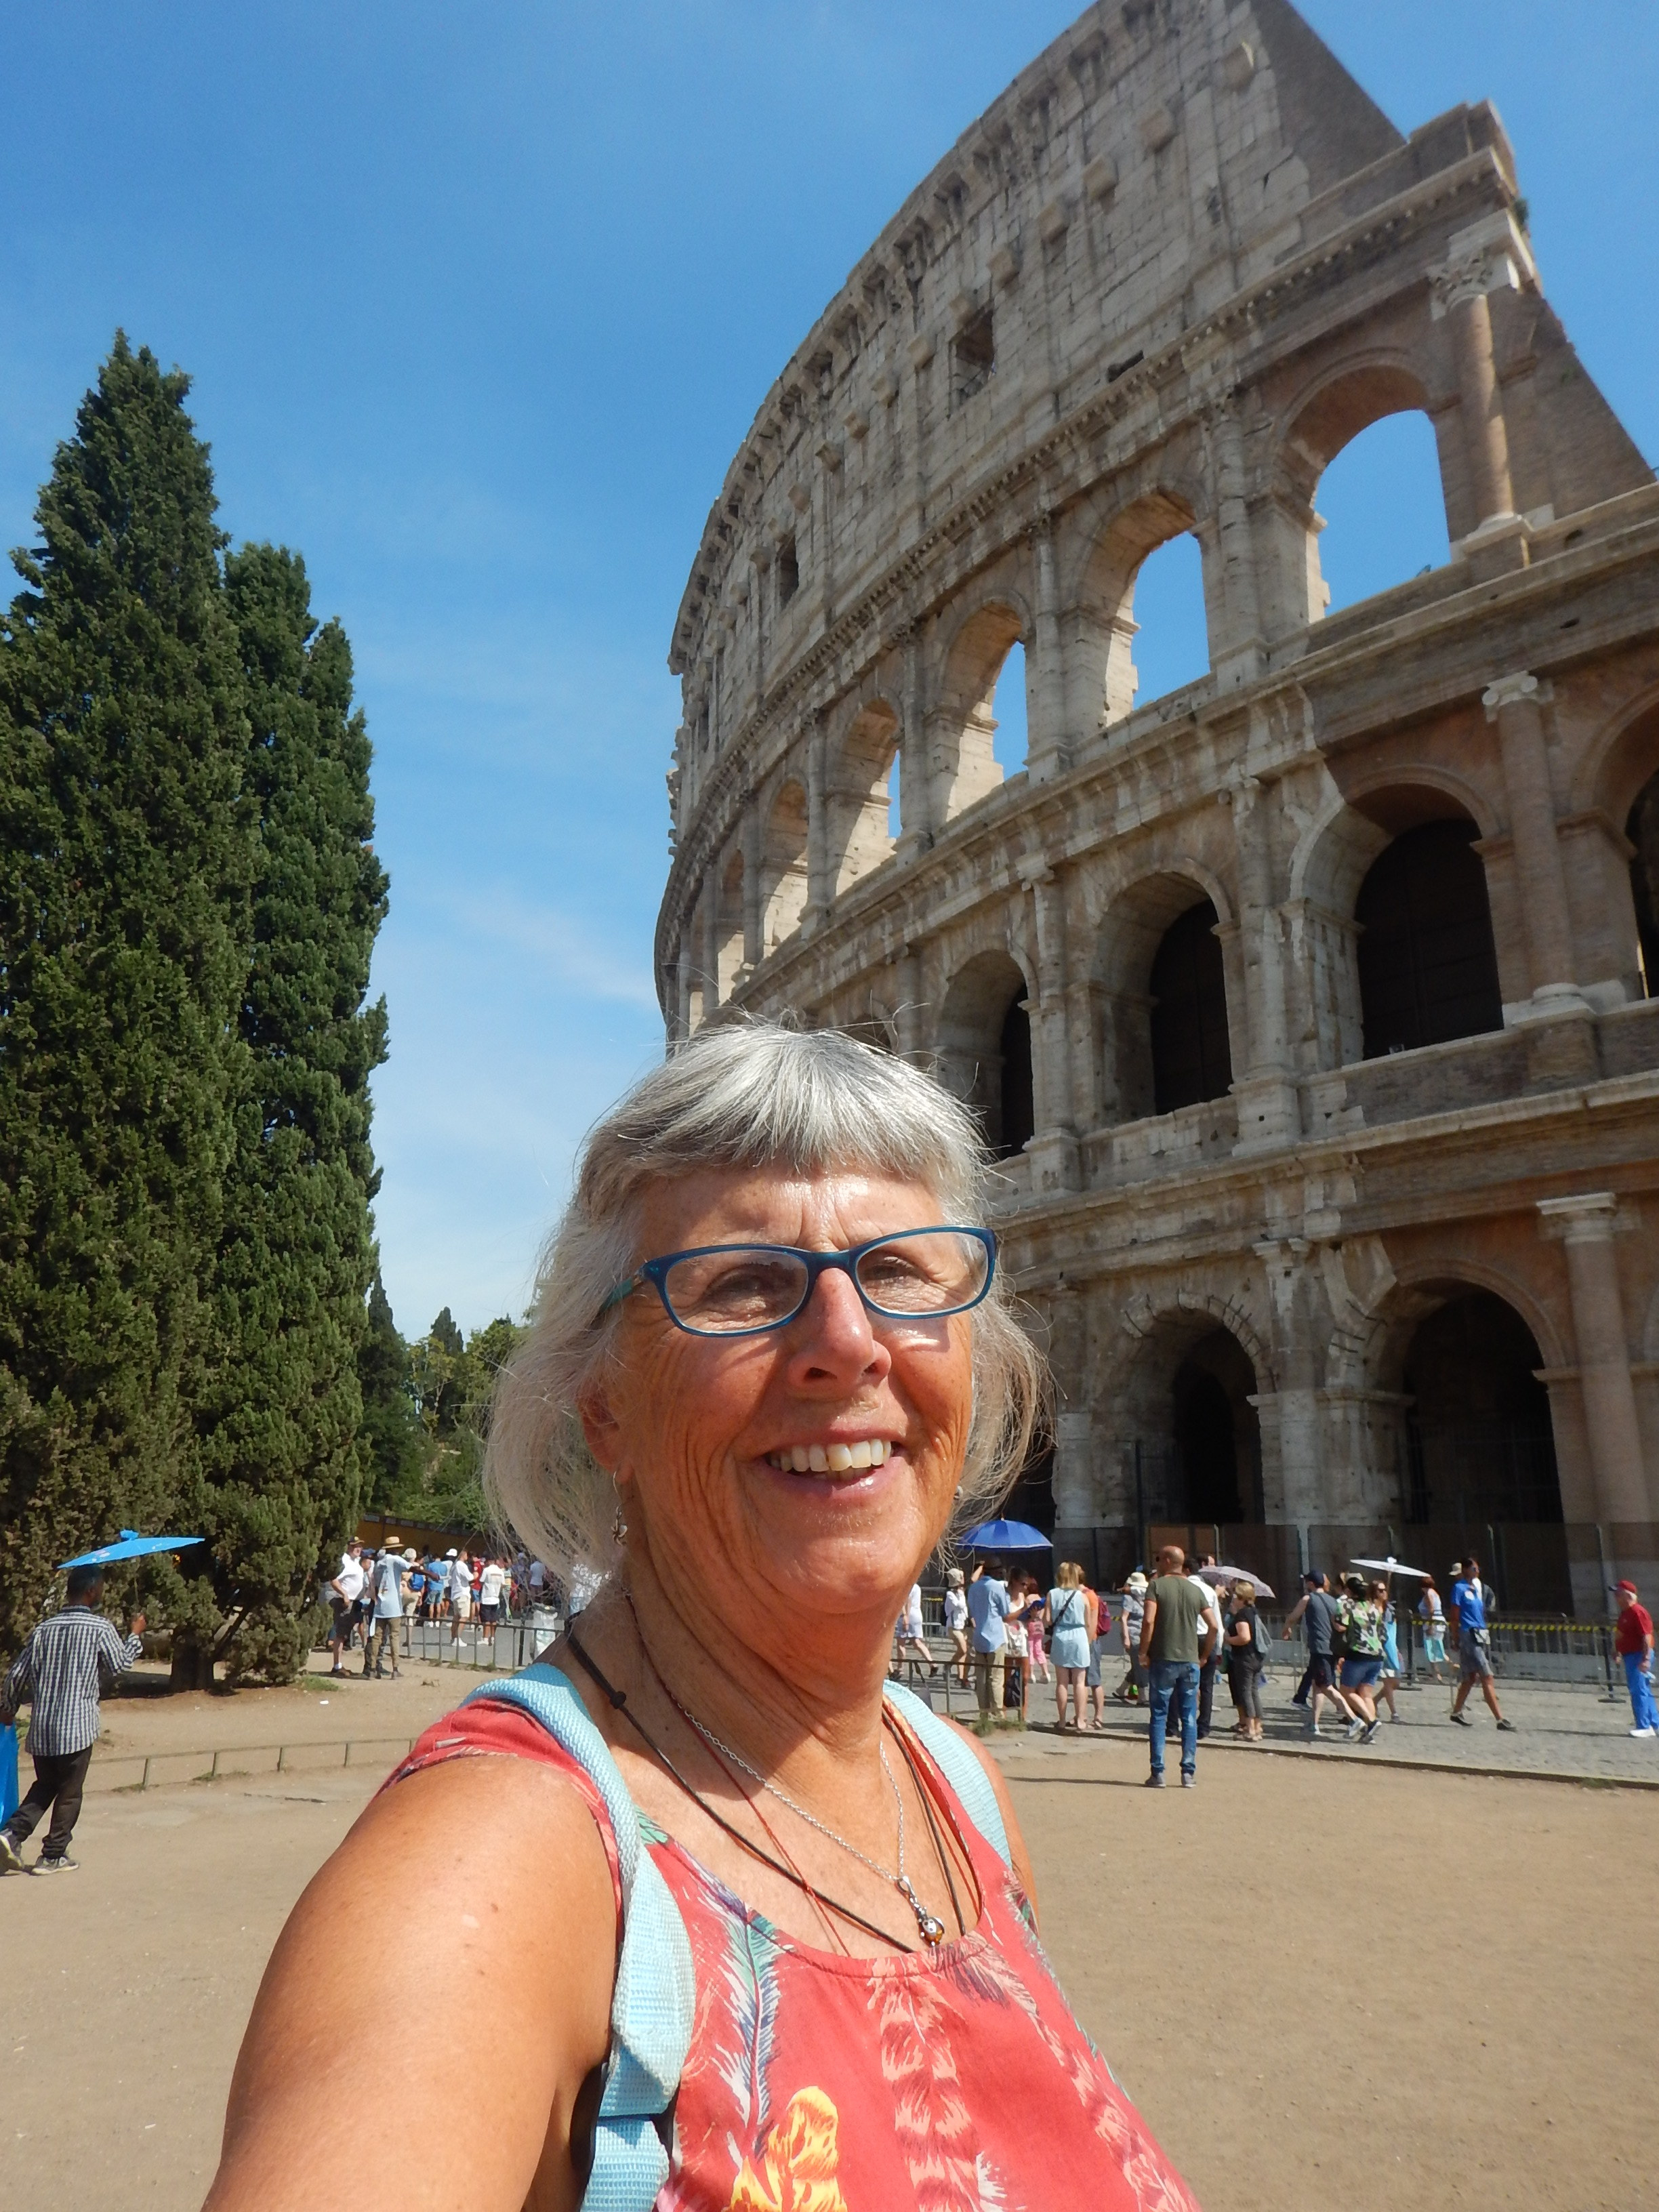 the Colosseum is no longer complete, over the years a huge section was destroyed in earthquakes, and more recently air pollution and other 20 C problems have contributed to further damage.